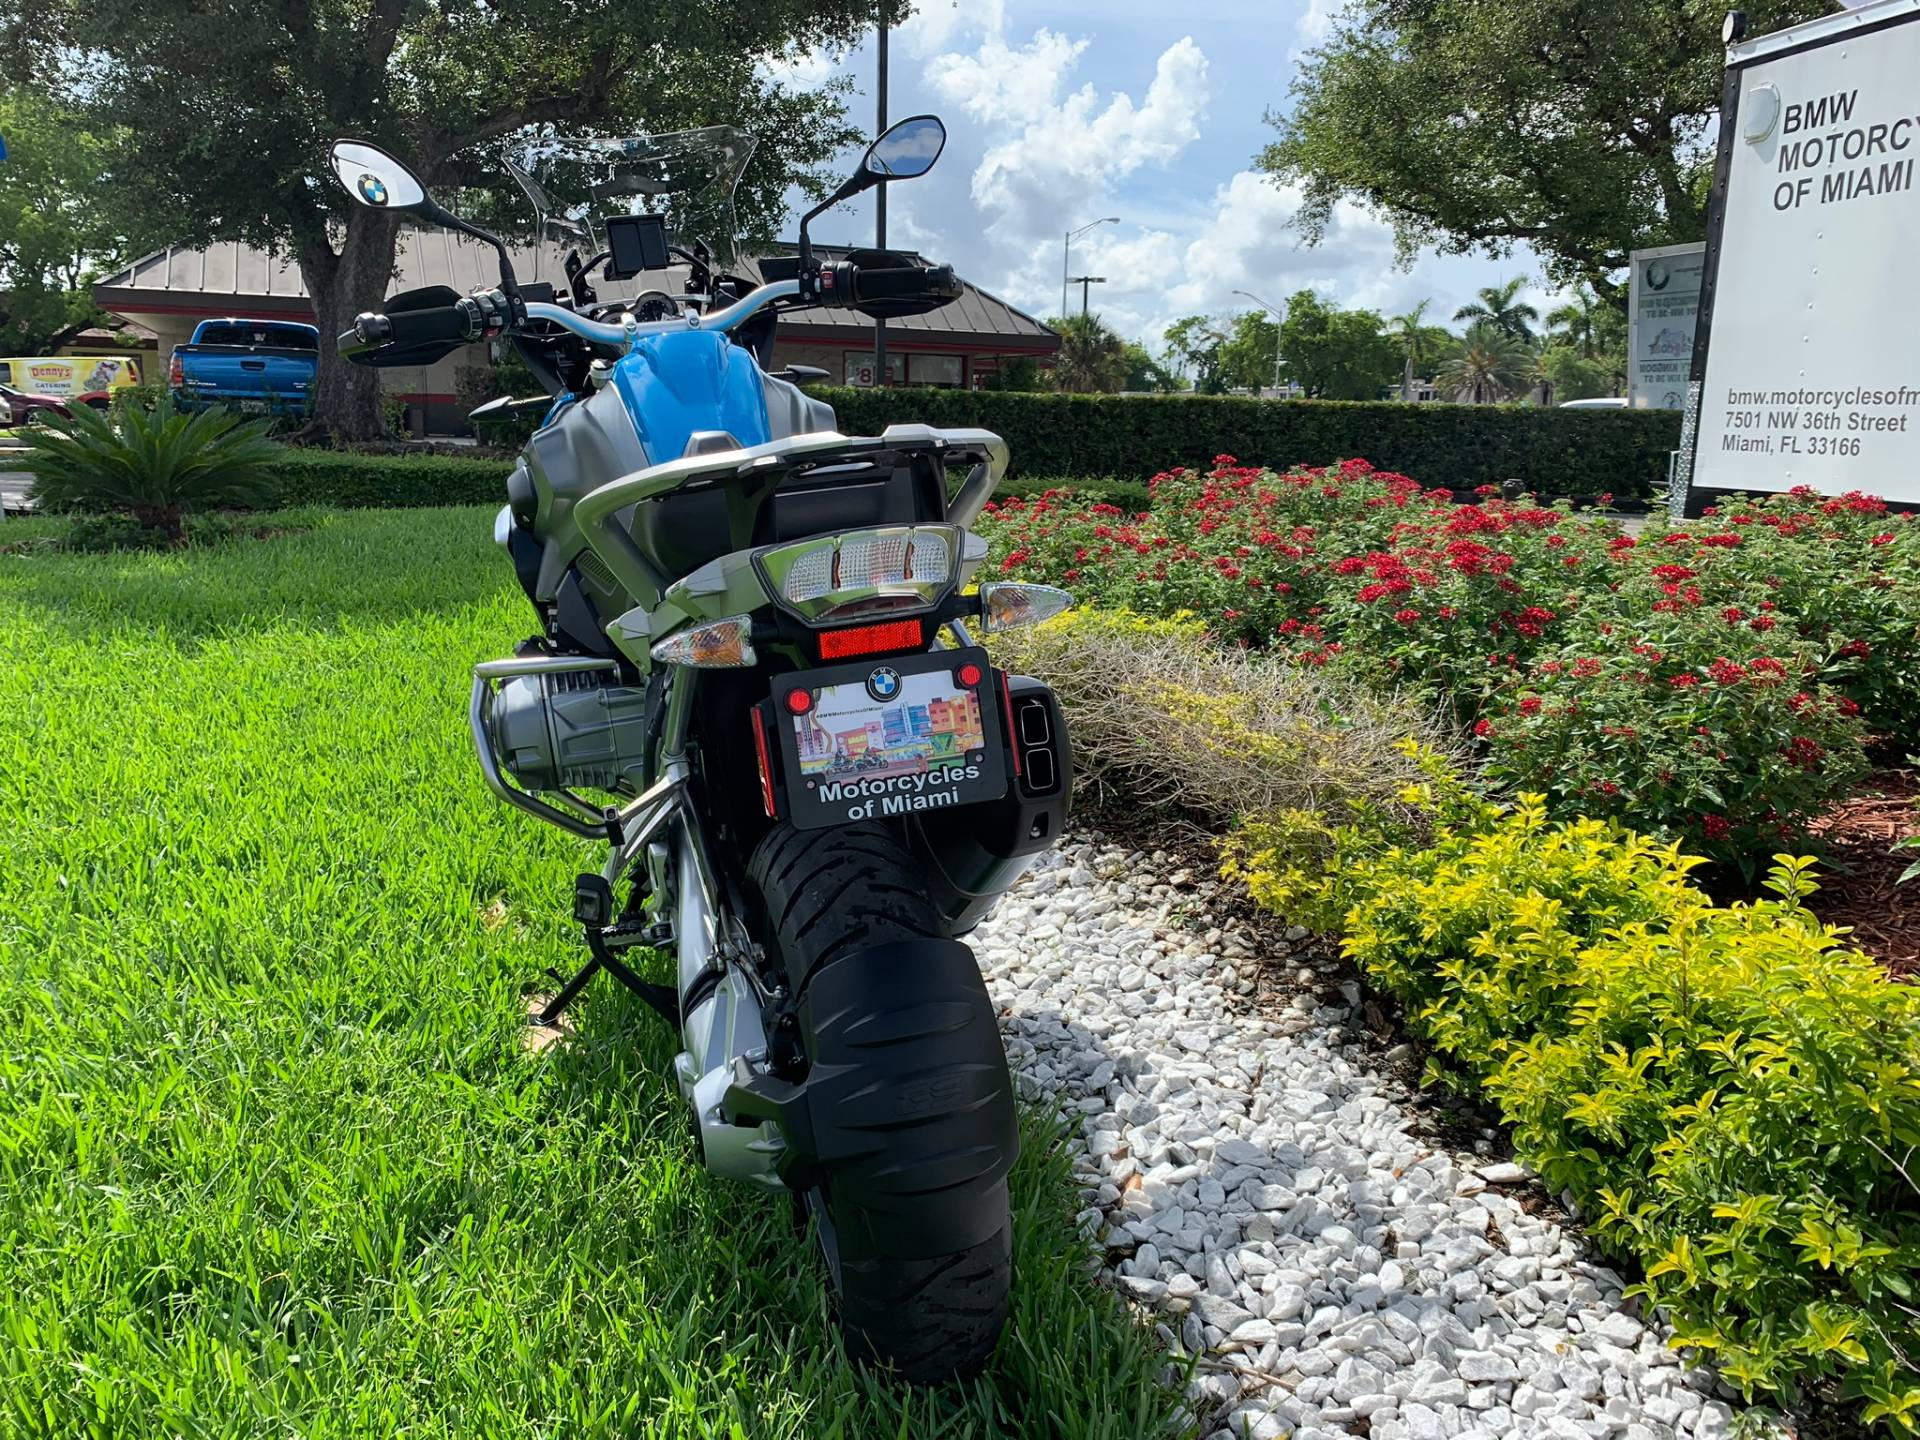 Used 2014 BMW R 1200 GS for sale, Pre-owned BMW R1200GS for sale, BMW Motorcycle Adventure, used BMW GS Fire Blue, BMW Motorcycles of Miami, Motorcycles of Miami, Motorcycles Miami, New Motorcycles, Used Motorcycles, pre-owned. #BMWMotorcyclesOfMiami #MotorcyclesOfMiami - Photo 14